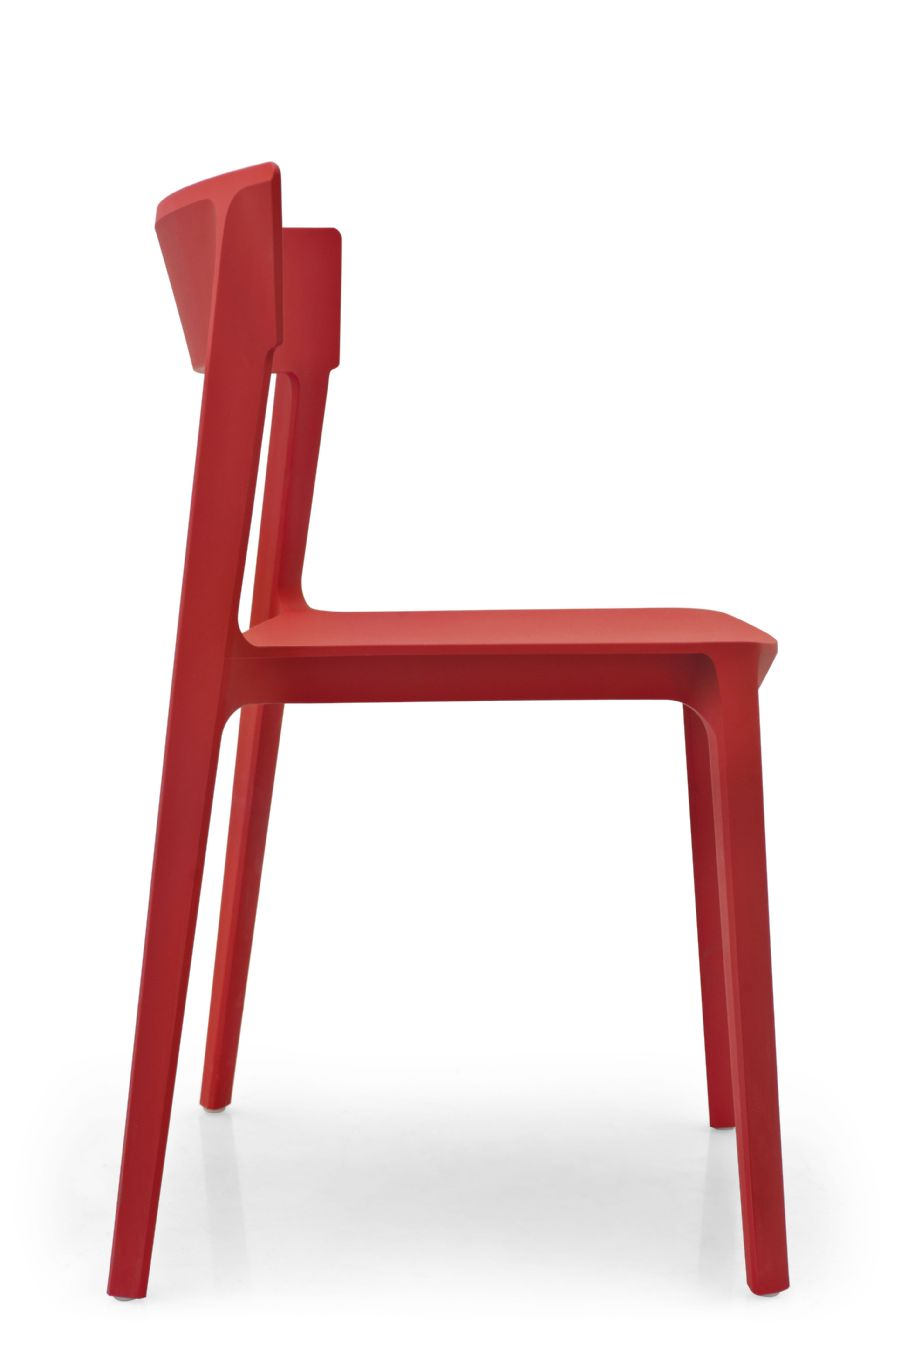 SKIN BY CALLIGARIS VISITOR CHAIR